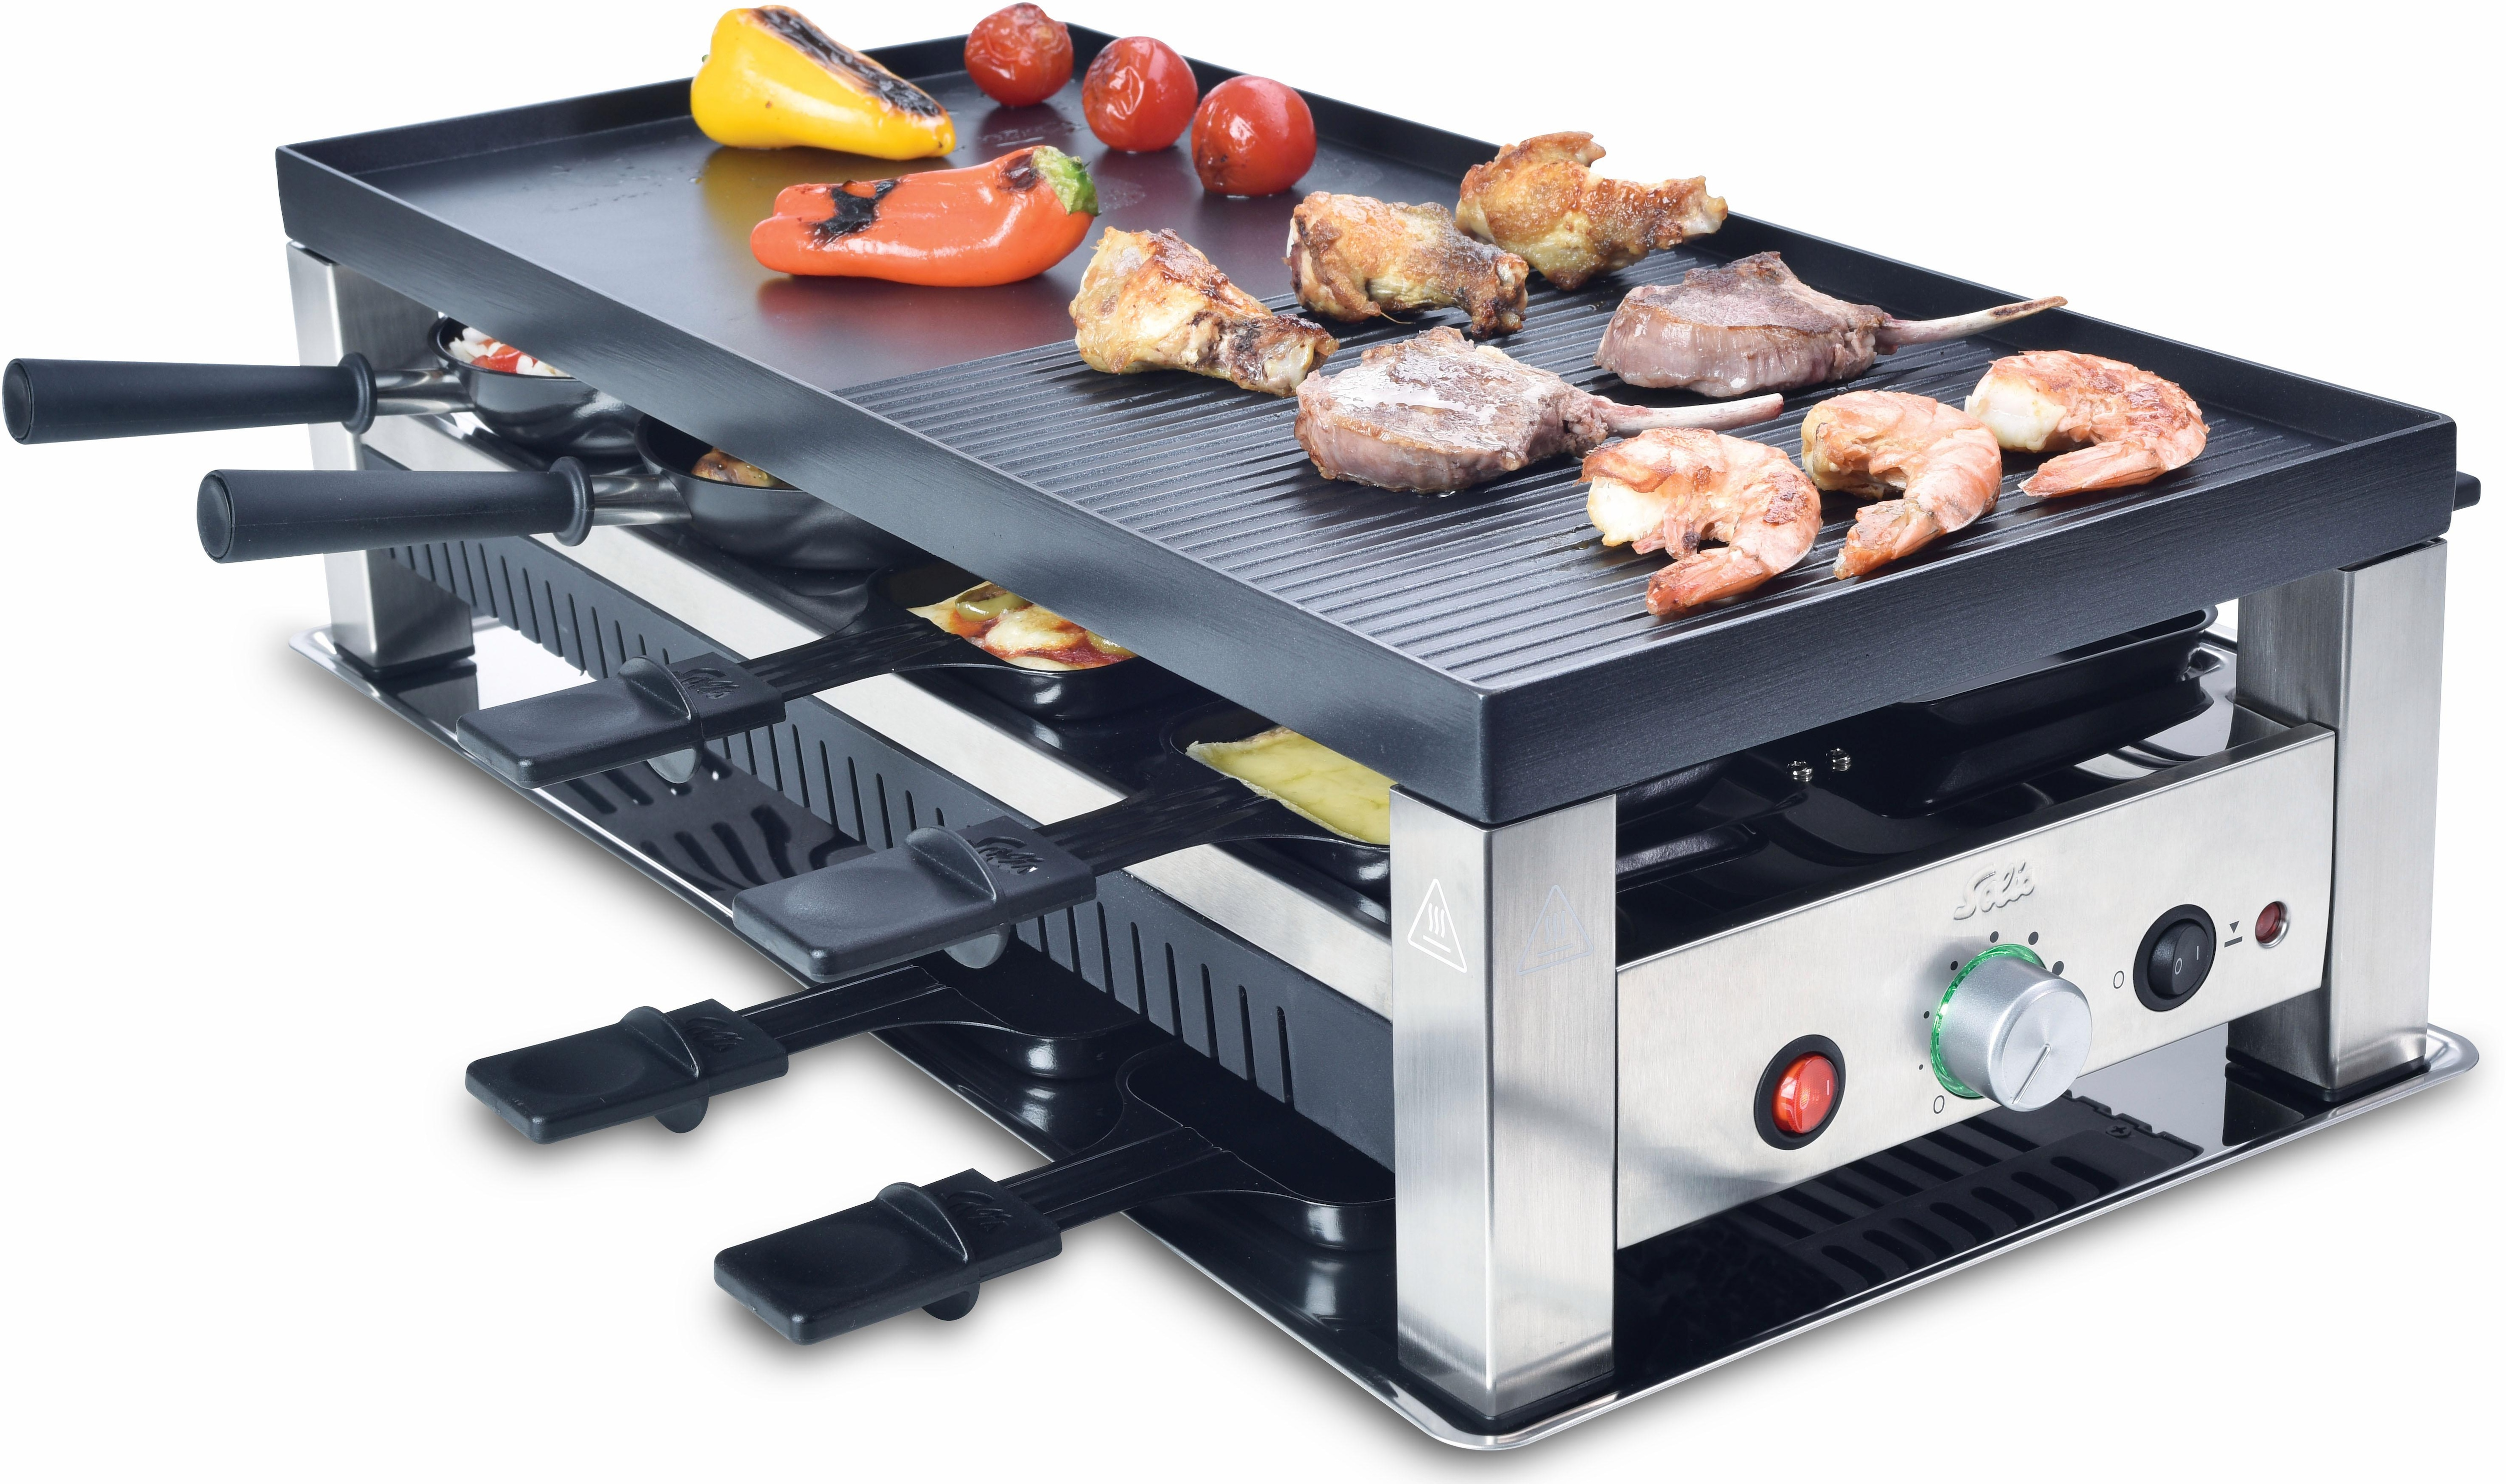 Grill SOLIS 5 in 1 Table Grill, Typ 791